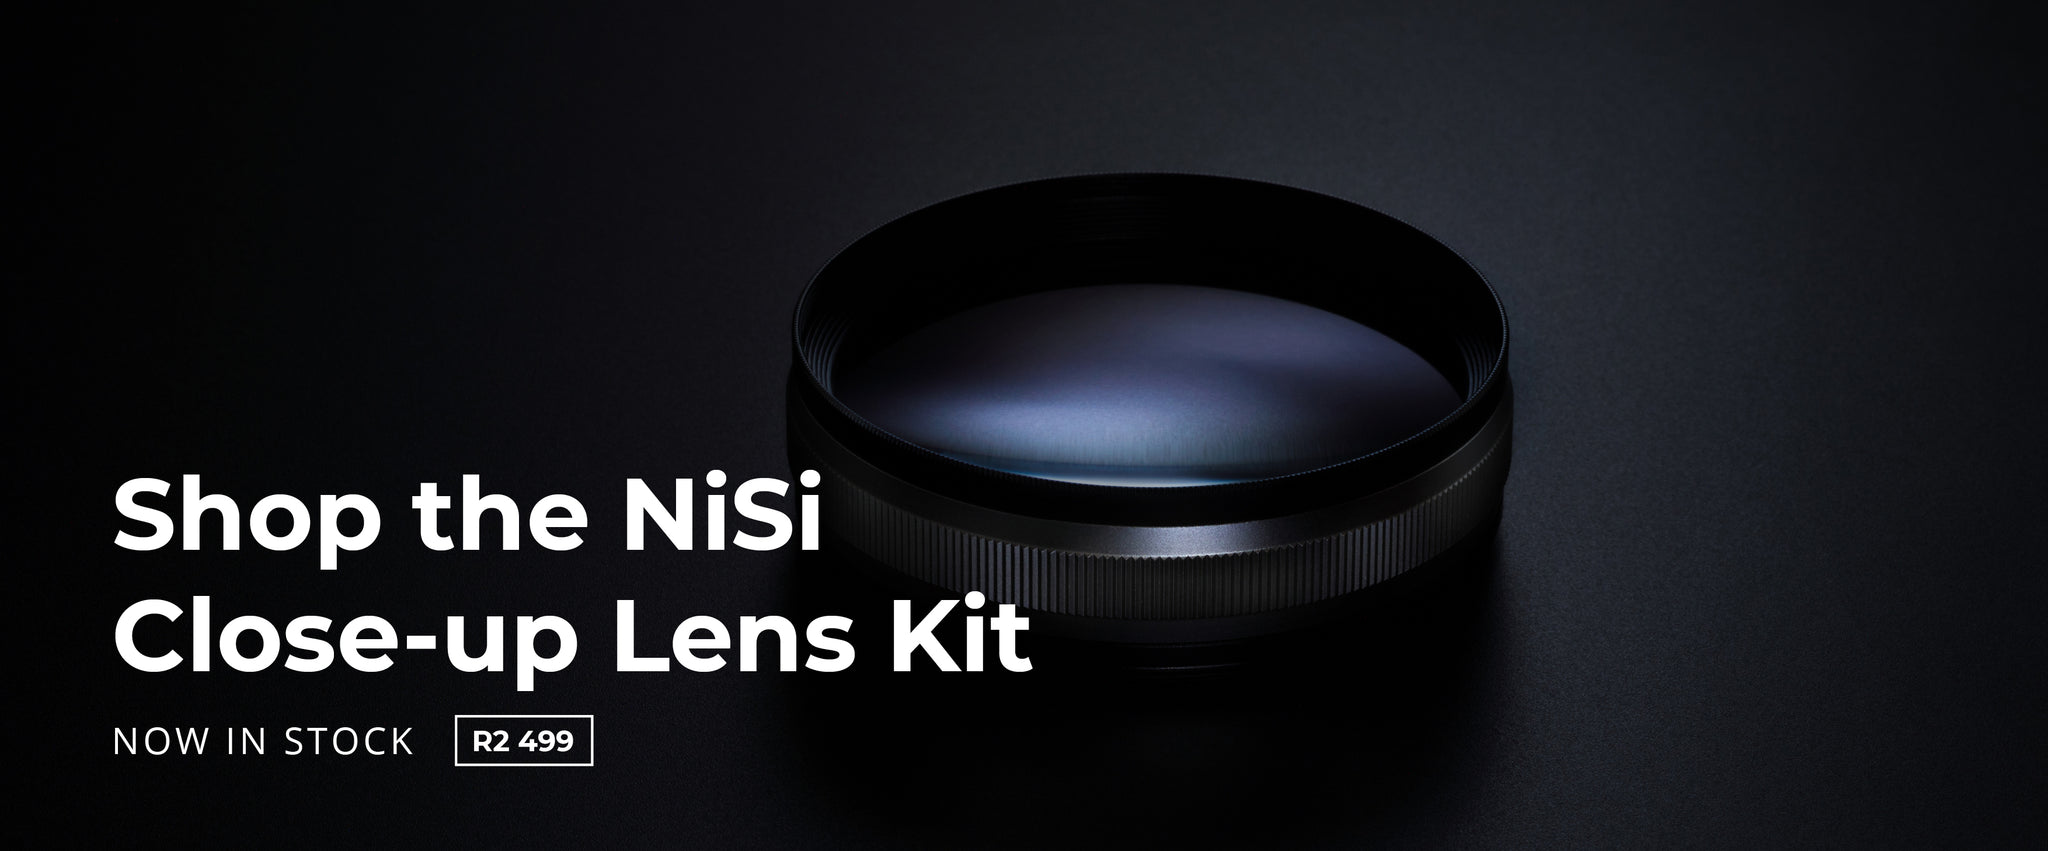 NiSi Close Up Lens Kit South Africa